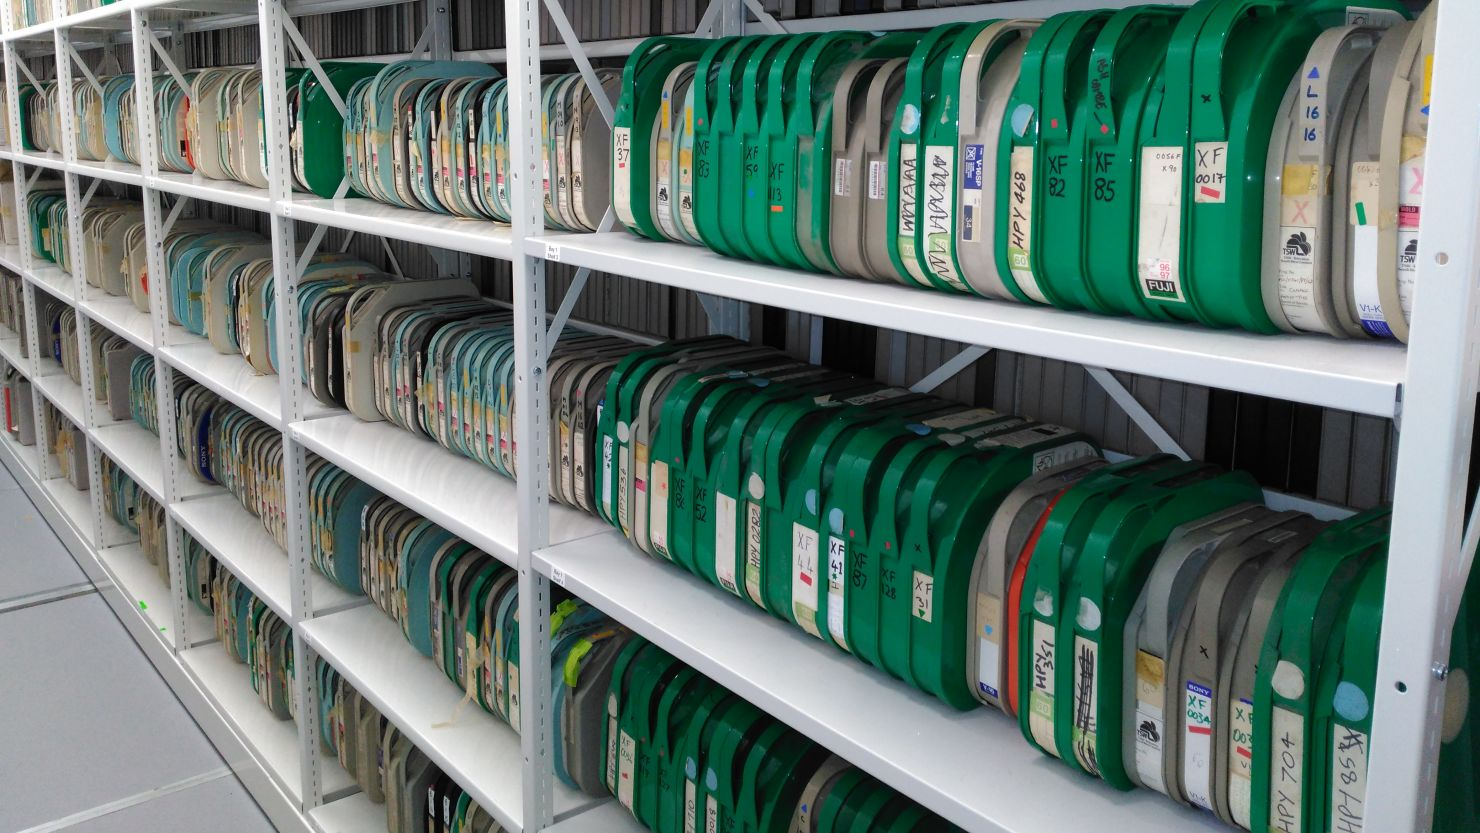 Media tapes in green cases on shelves in an archive store